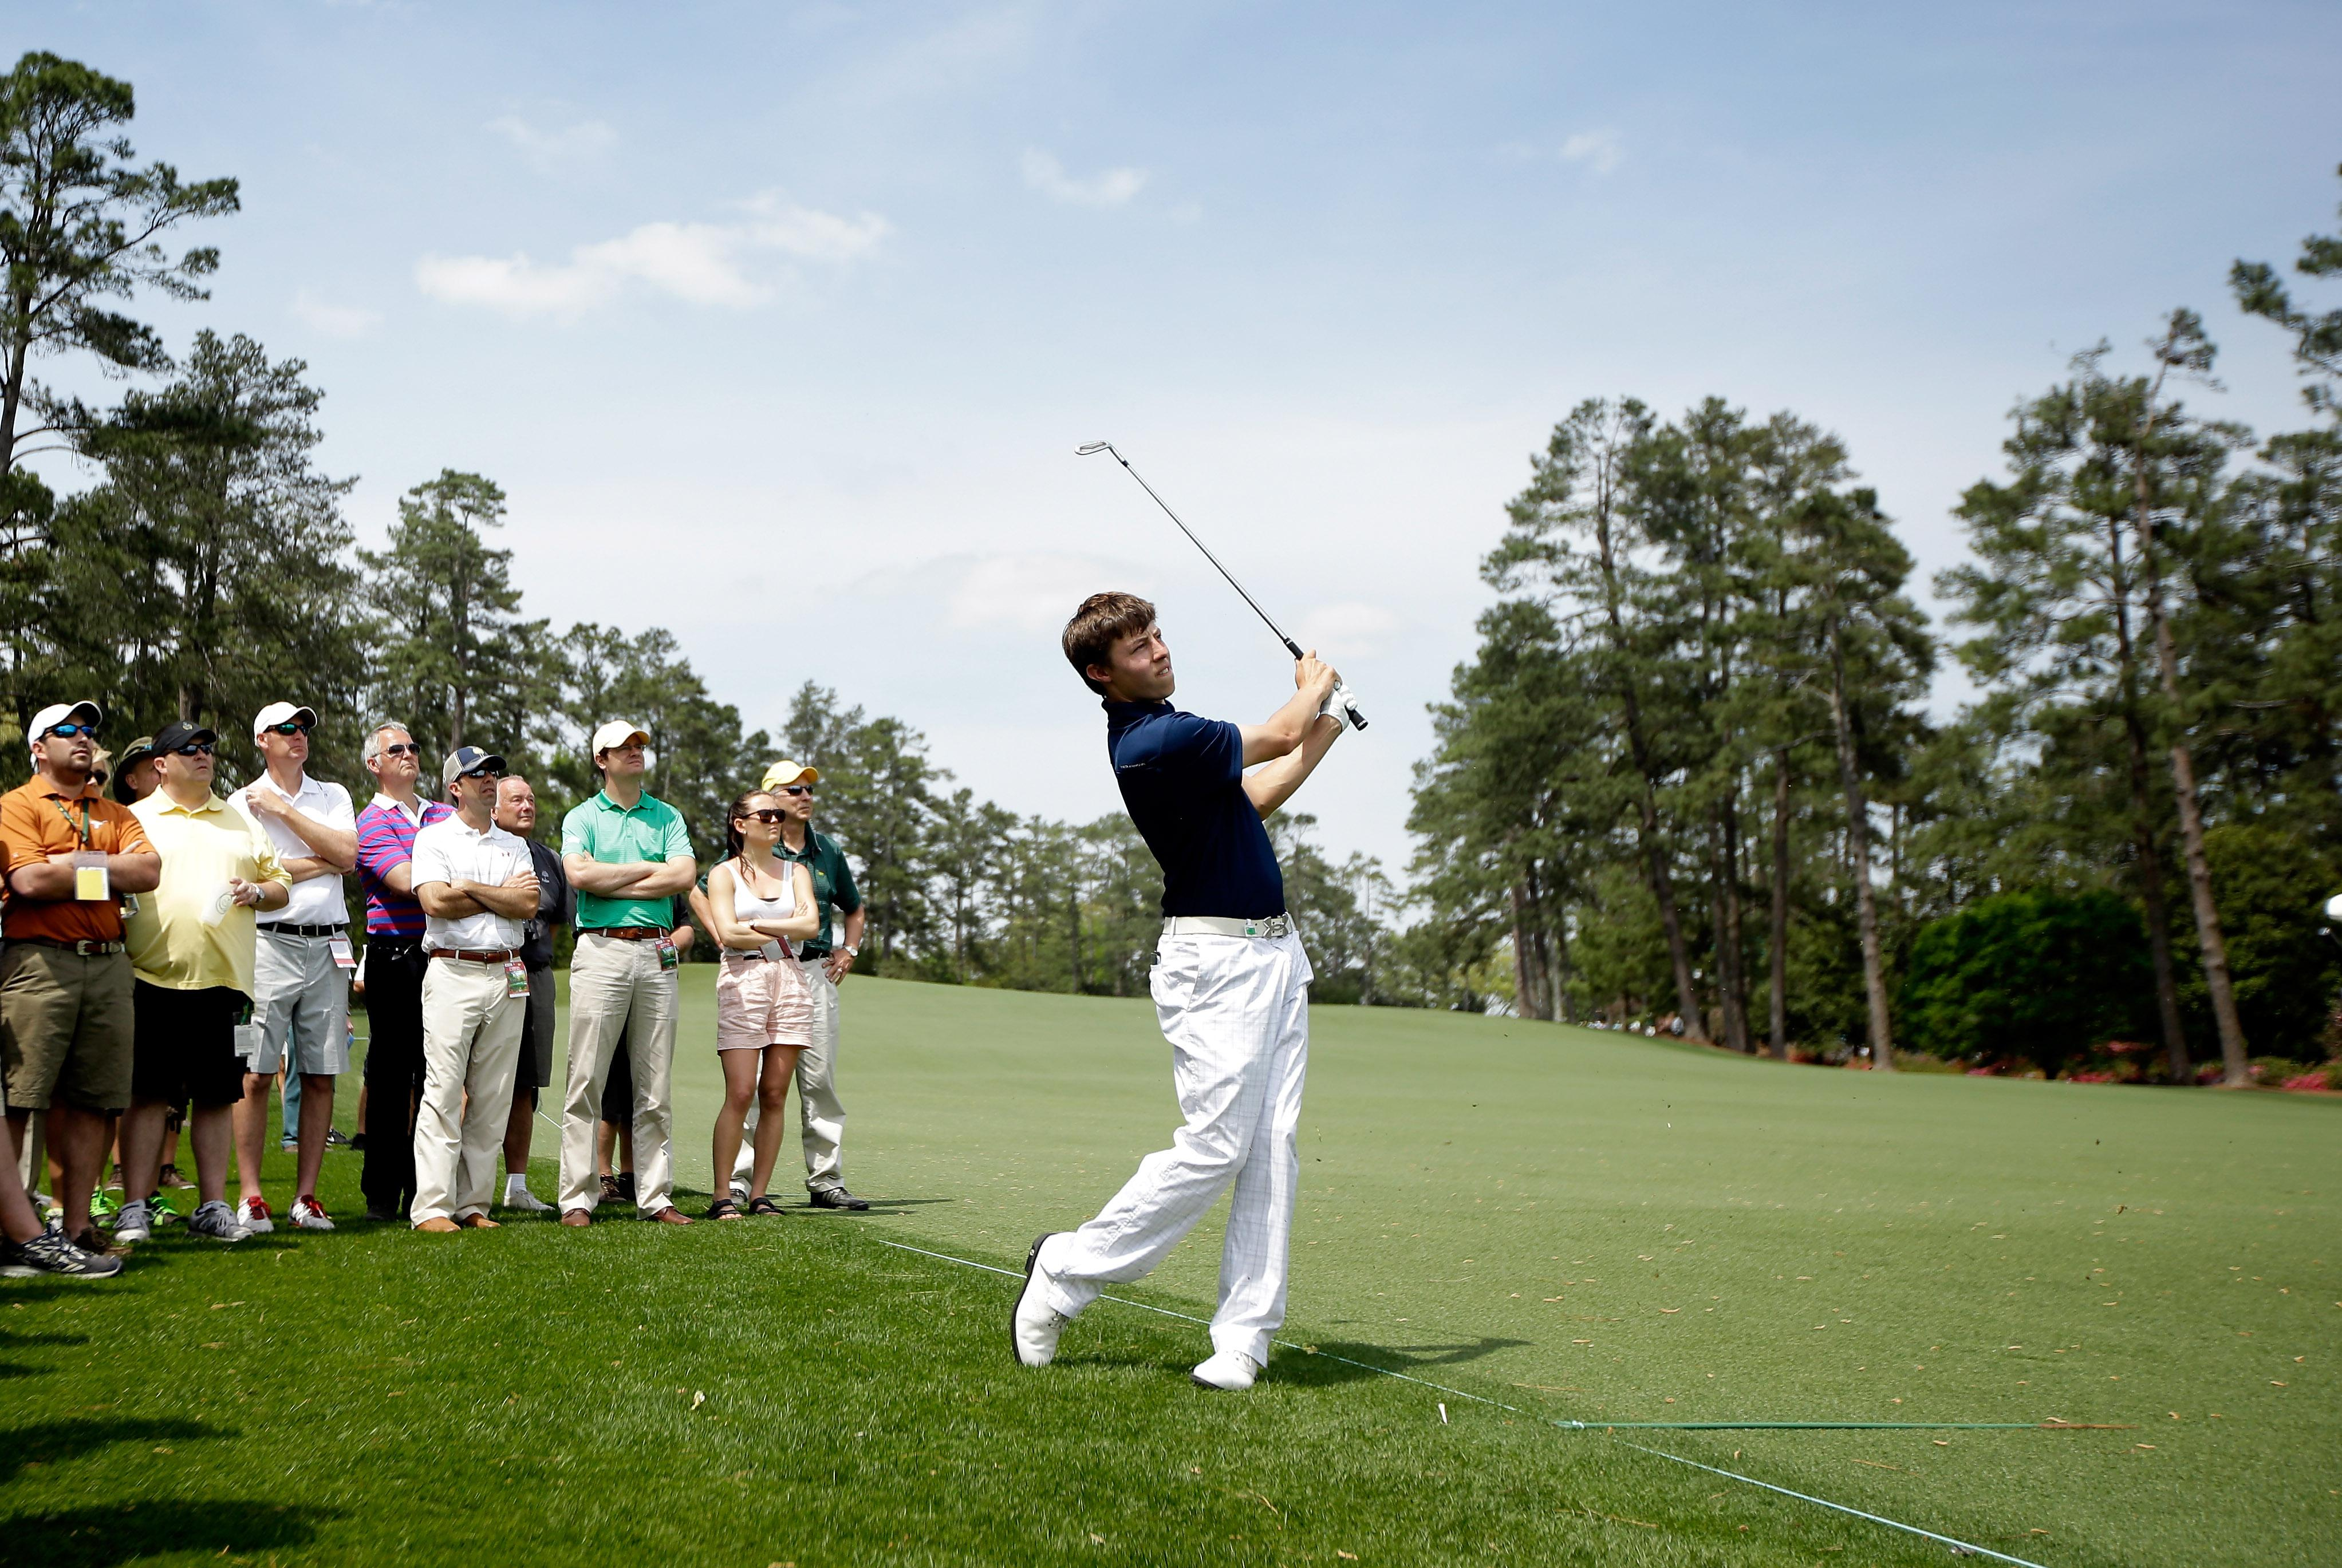 The powers that be at Augusta wanted to keep their course secretive